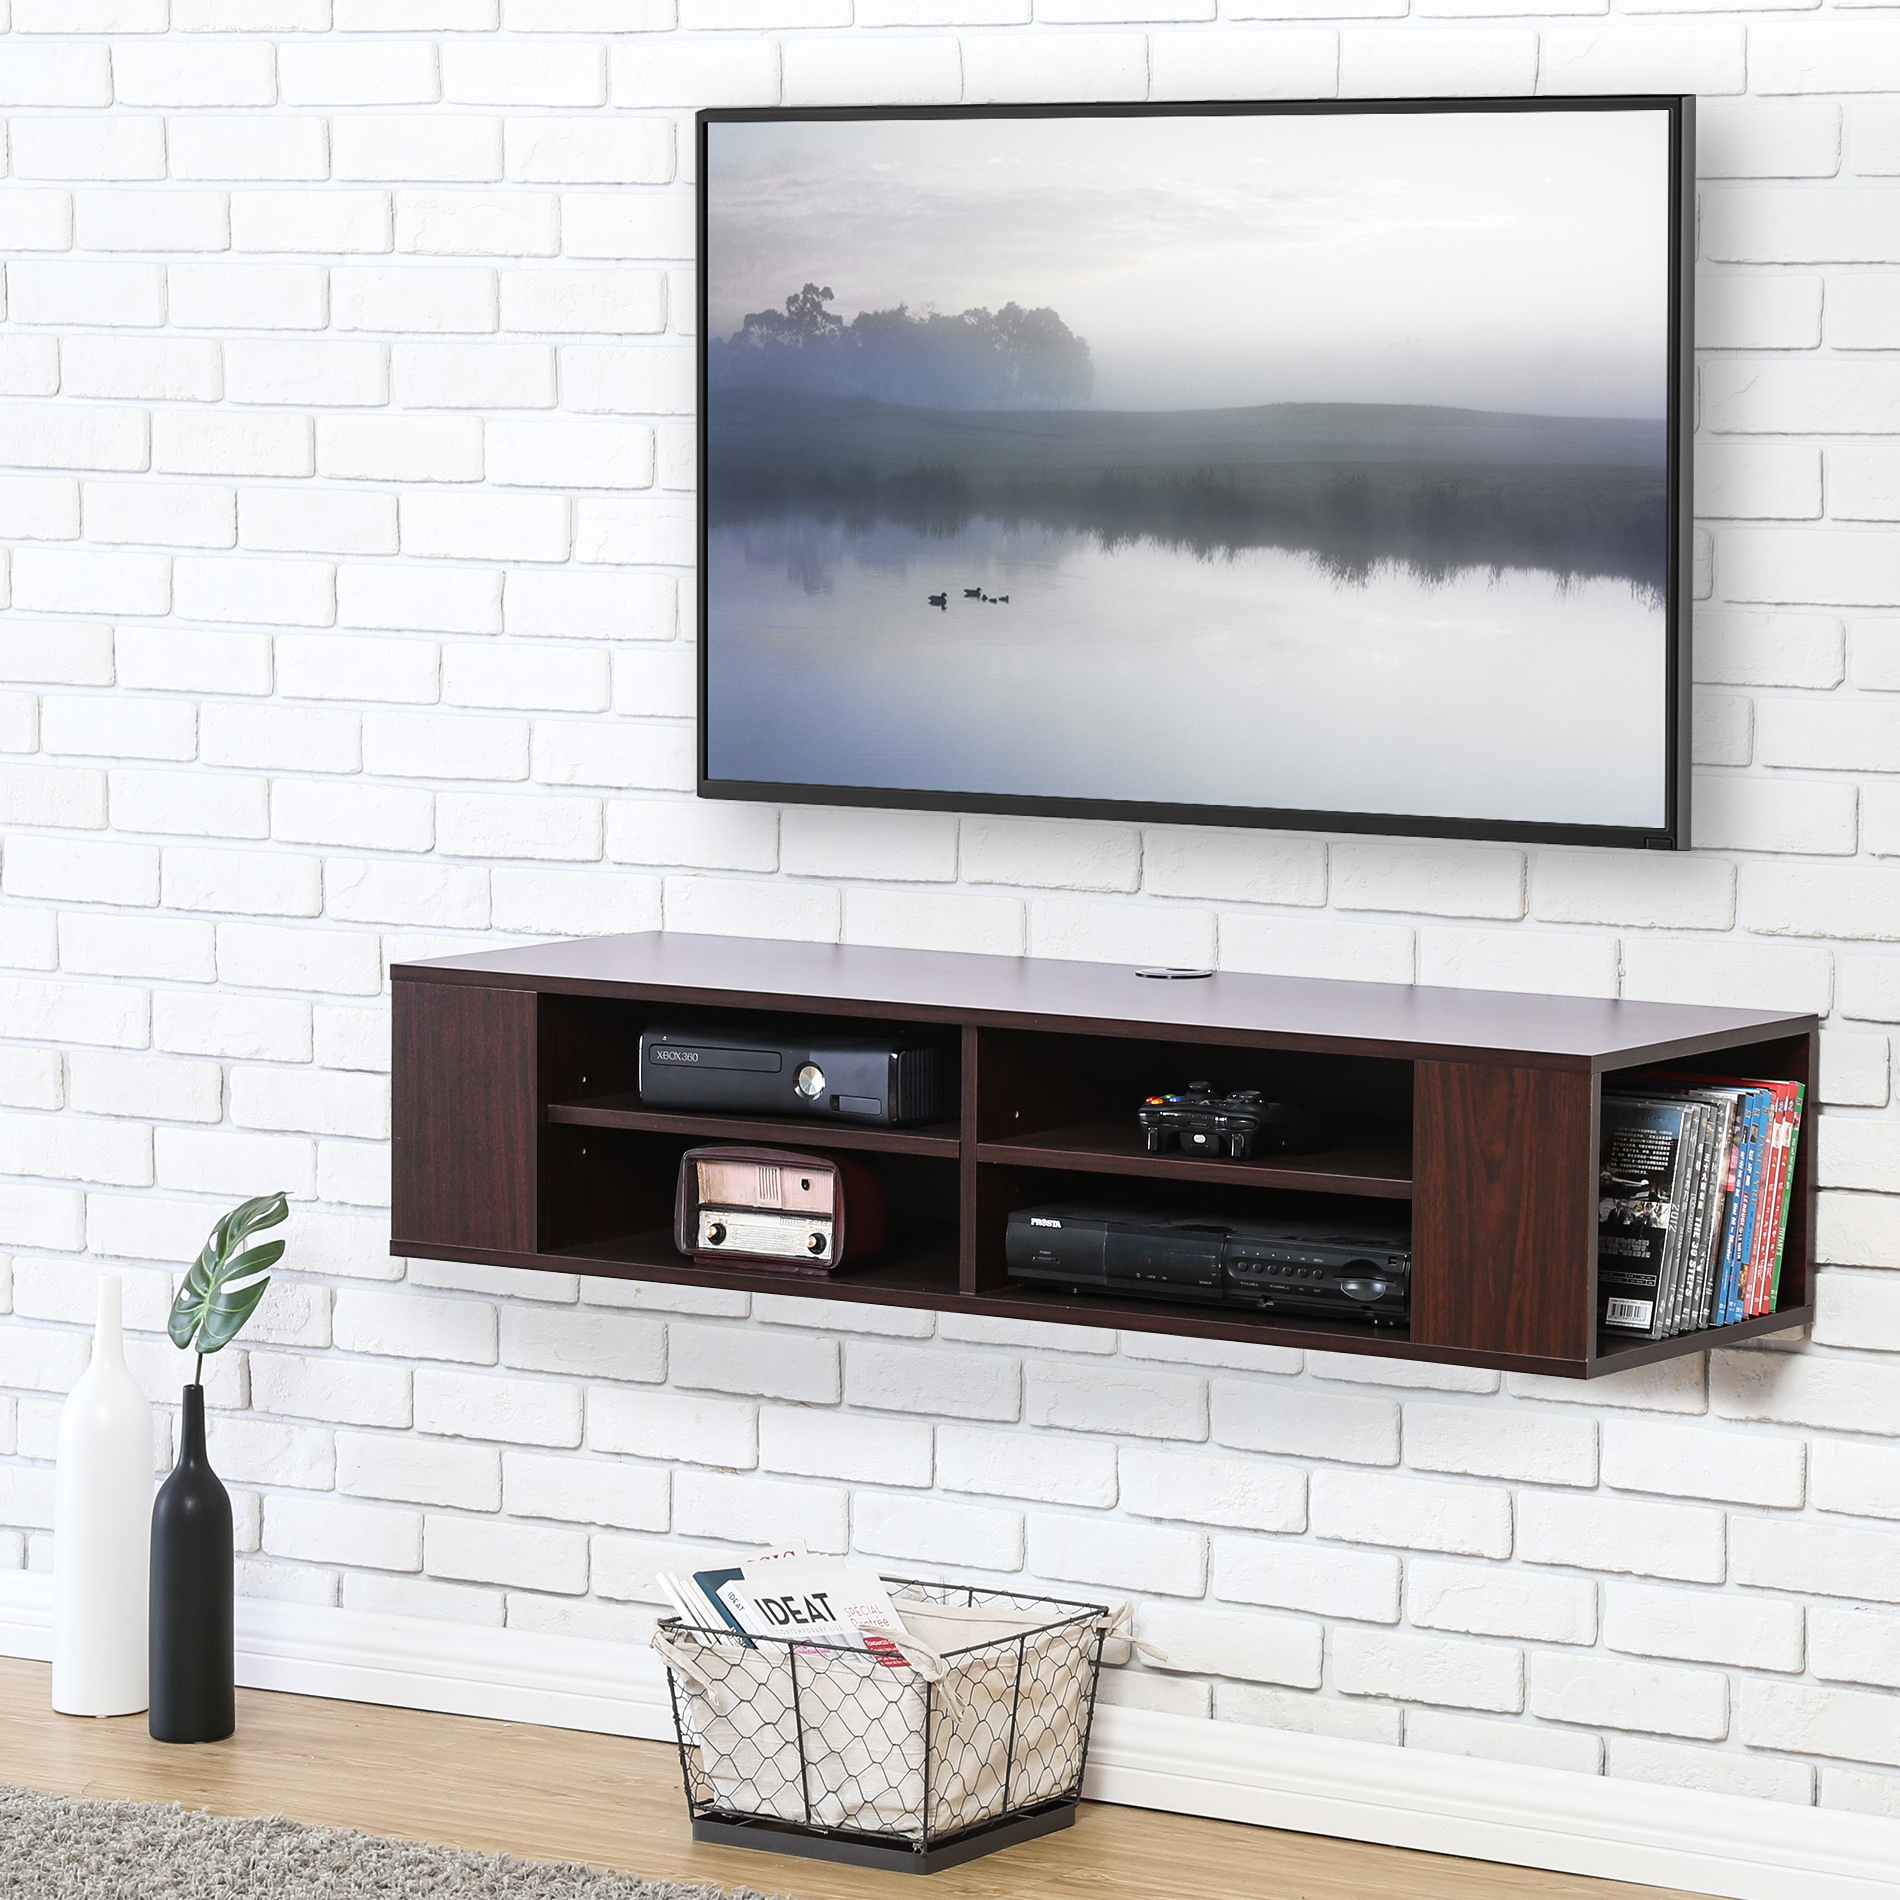 Fitueyes Wall Mounted Tv Stand Media Console for up to 48 inch TV DS210001WB